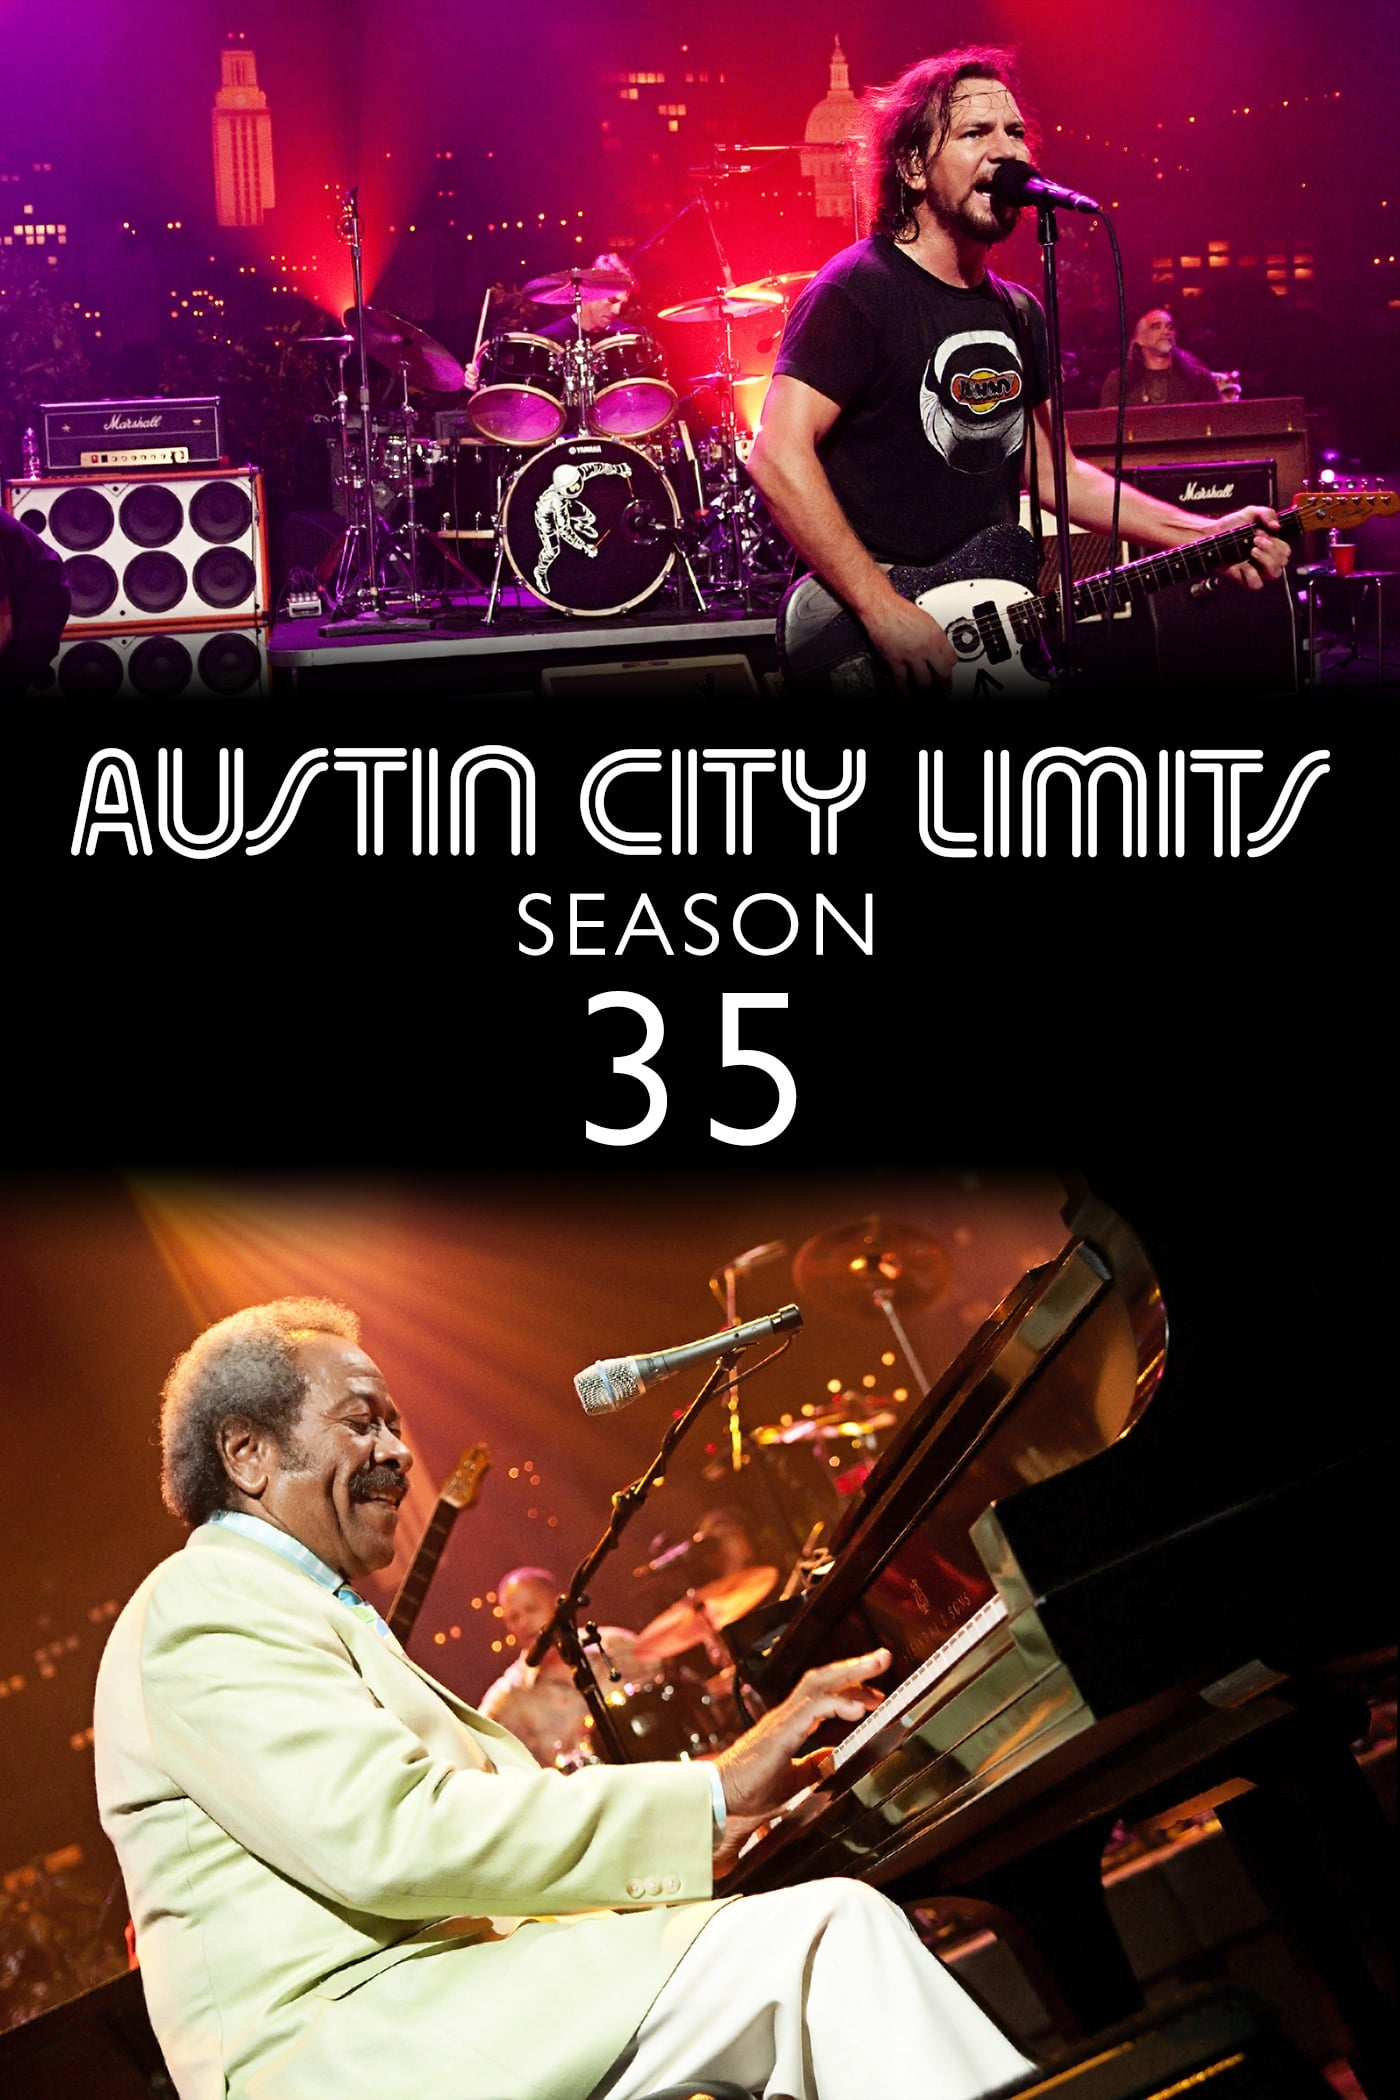 Austin City Limits Season 35